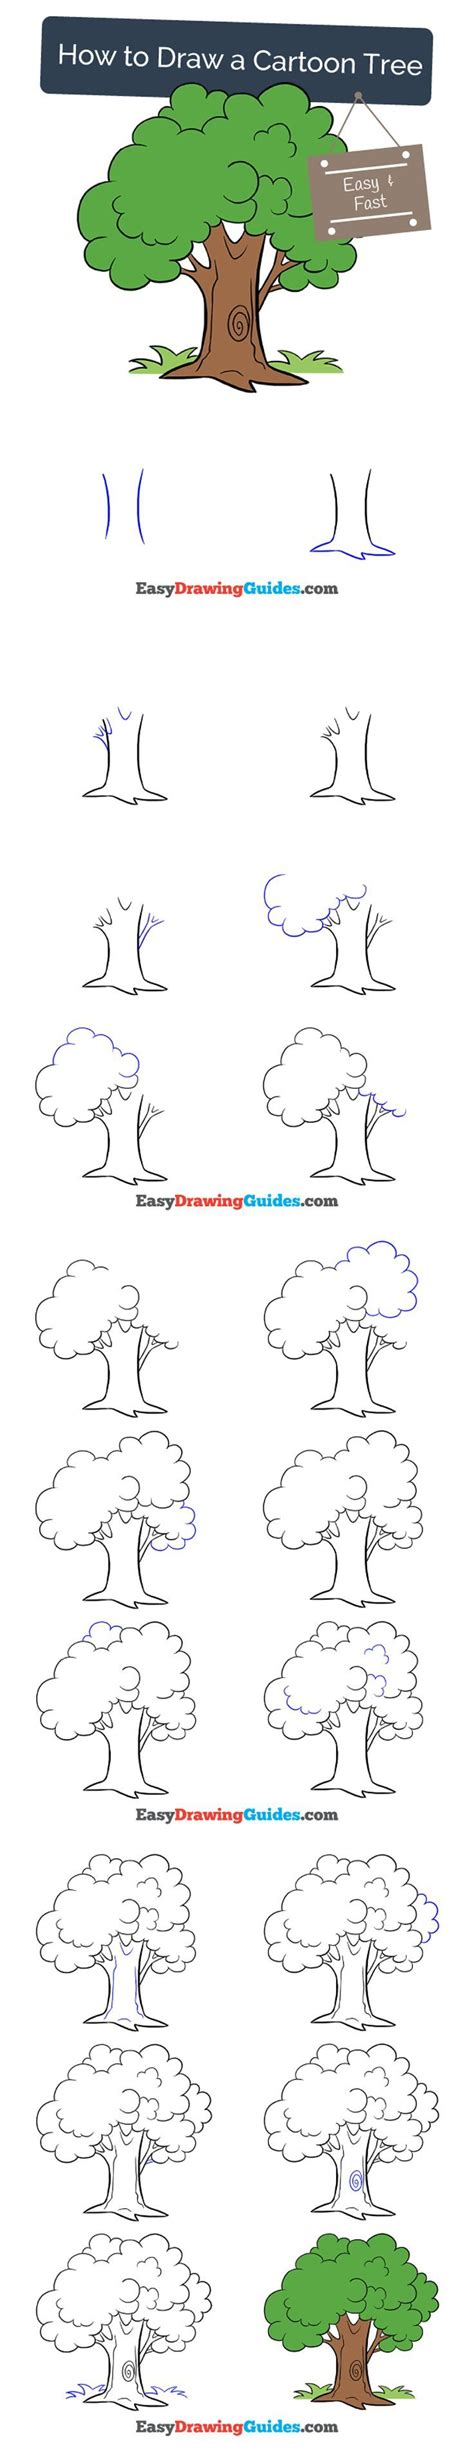 typography tutorial step by step draw pattern learn how to draw a cartoon tree easy step